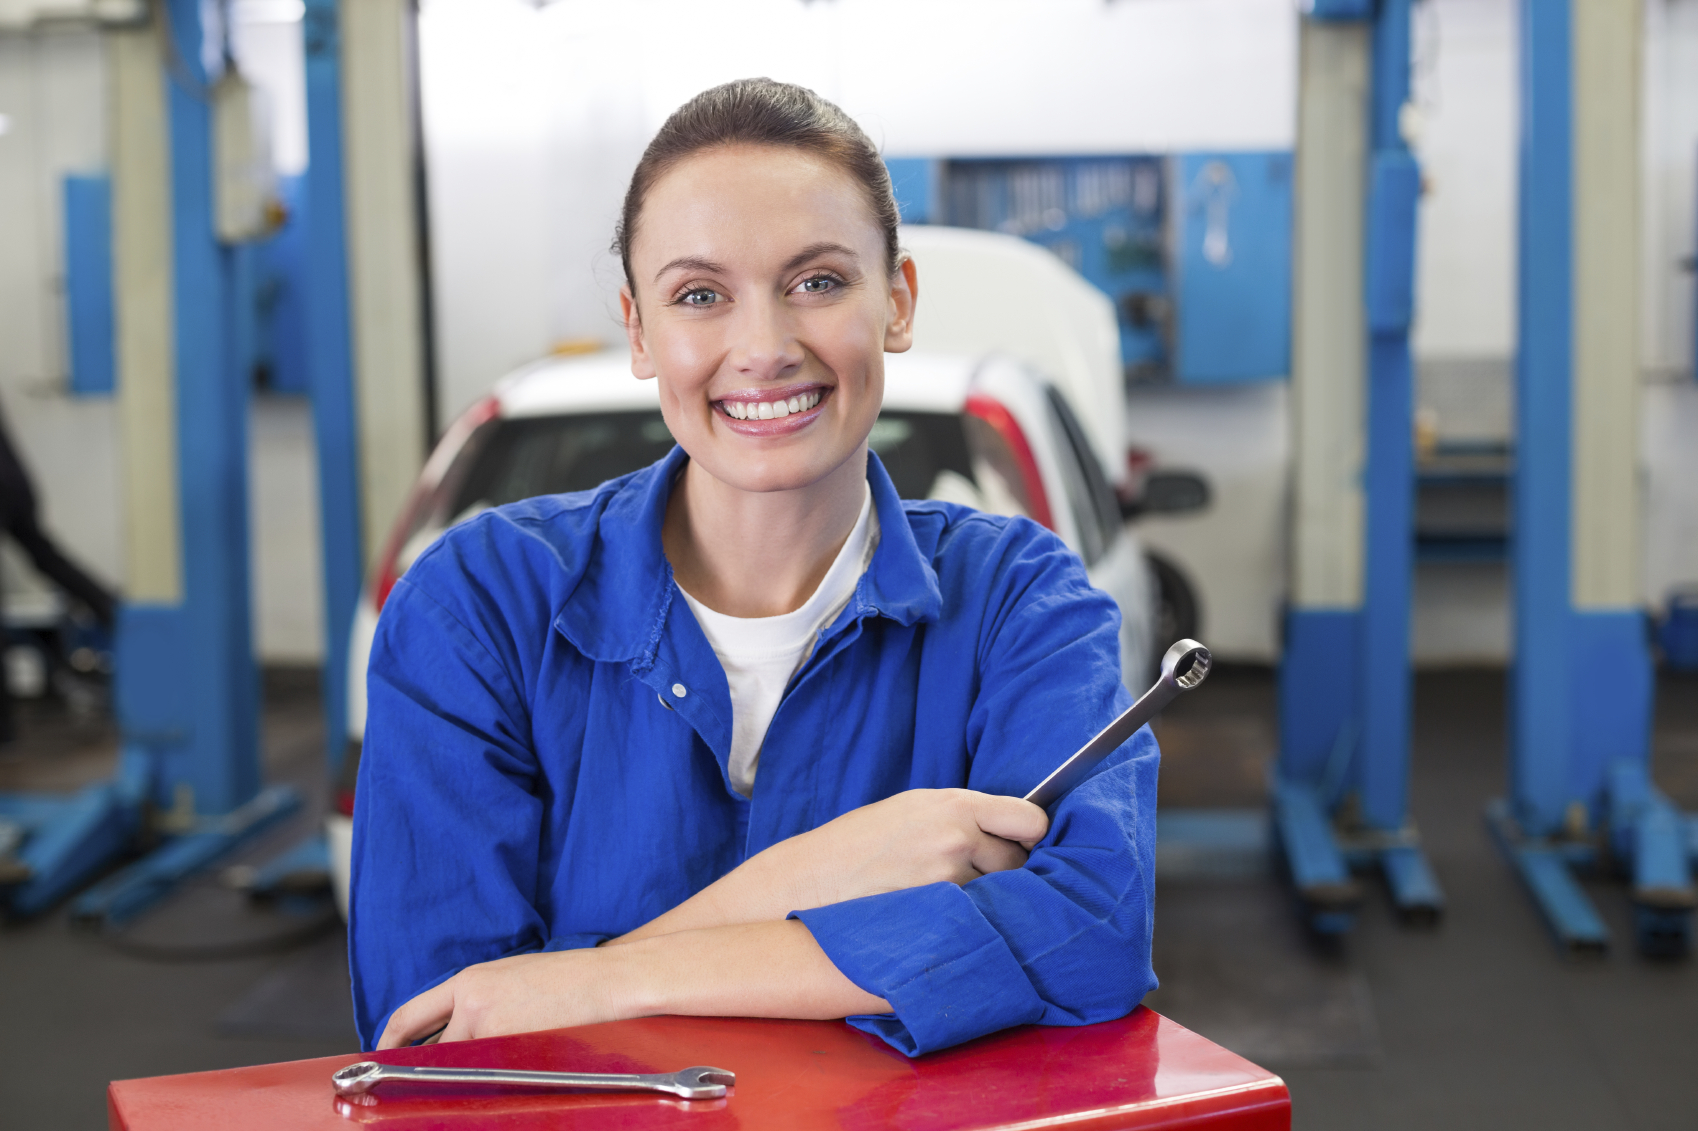 Oil Change Service near Ridgefield Park, NJ